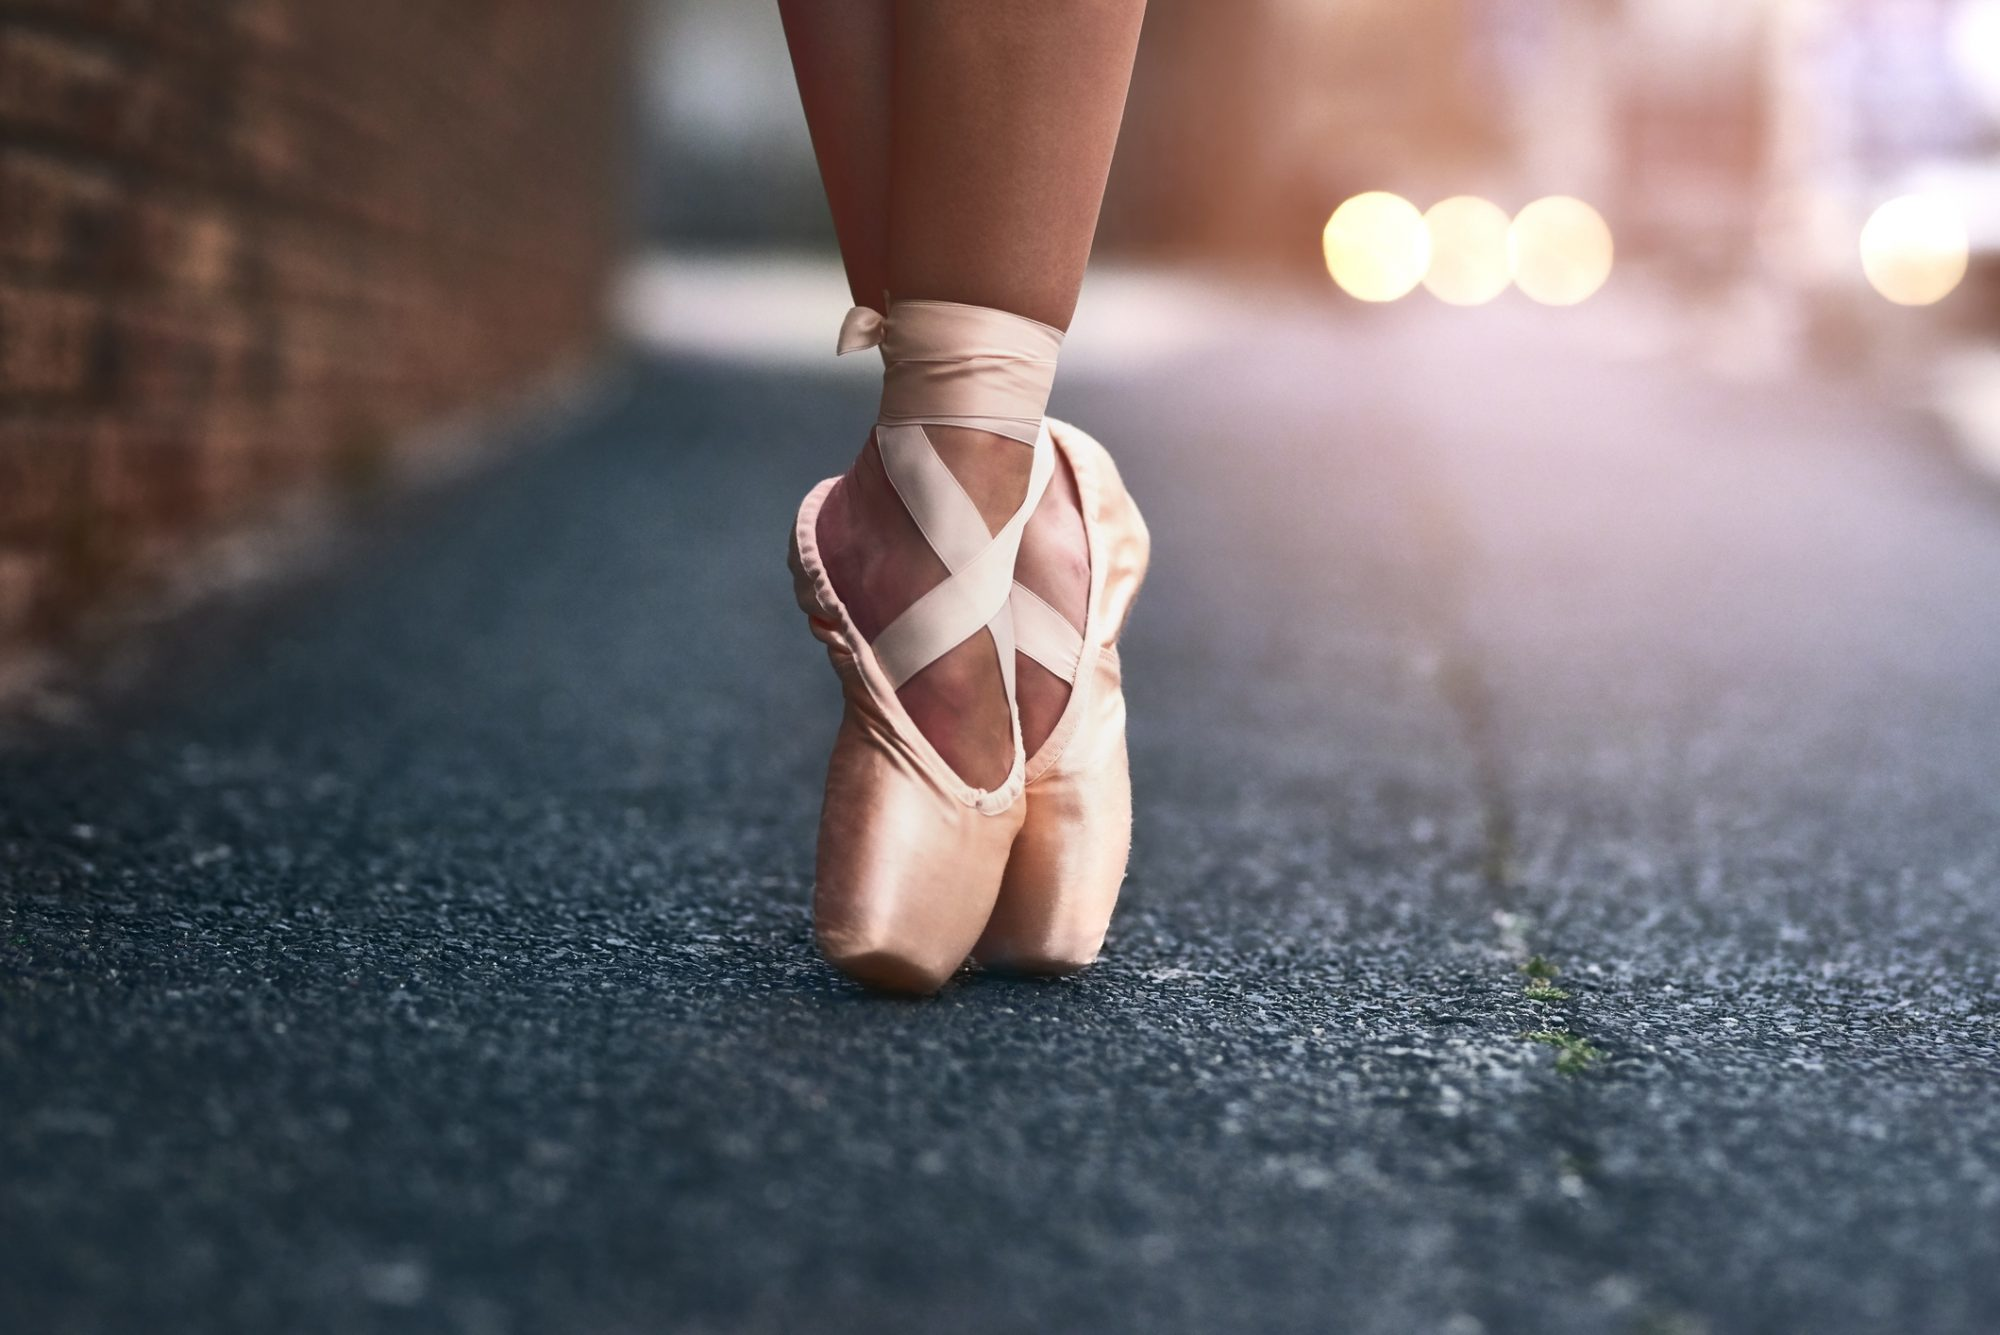 Cropped shot of a ballet dancer standing on tiptoes against an urban background